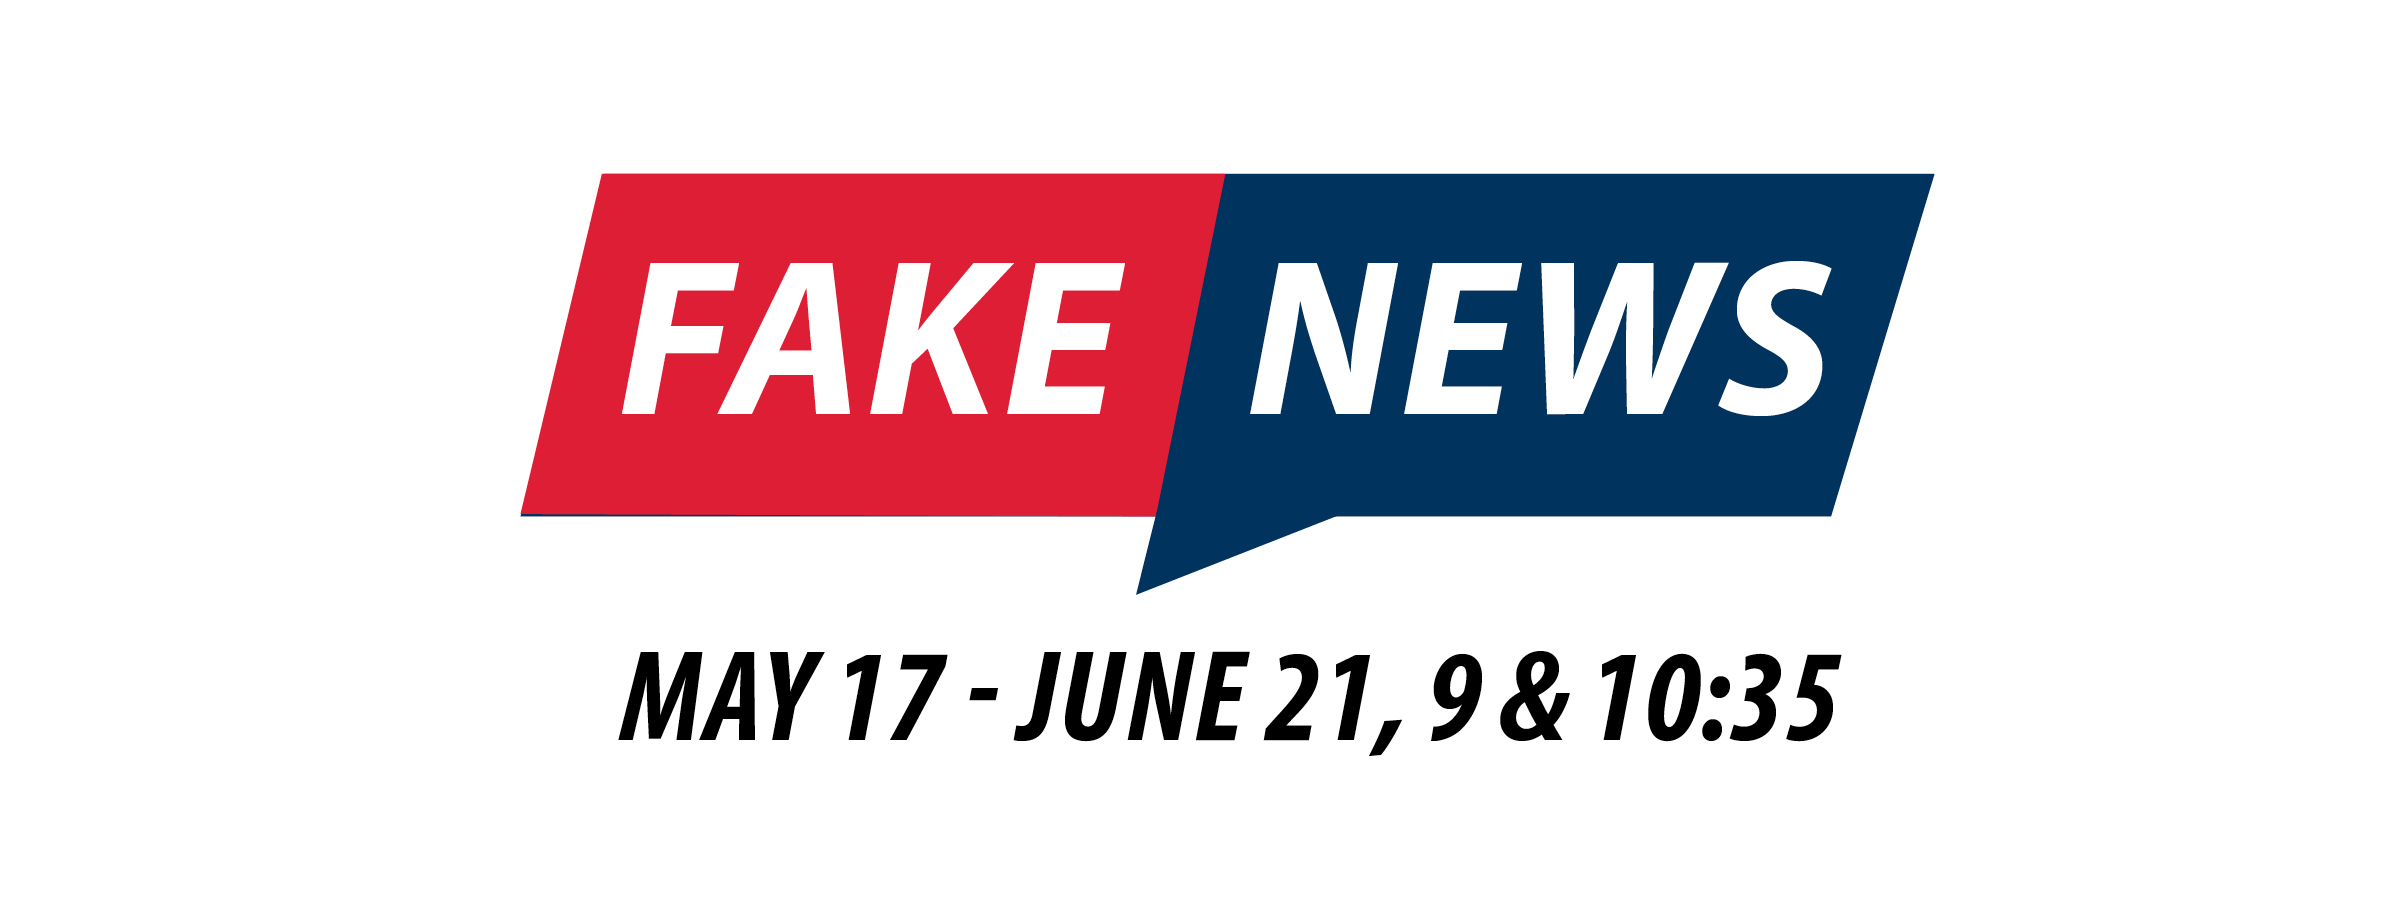 Fake News Series Graphic